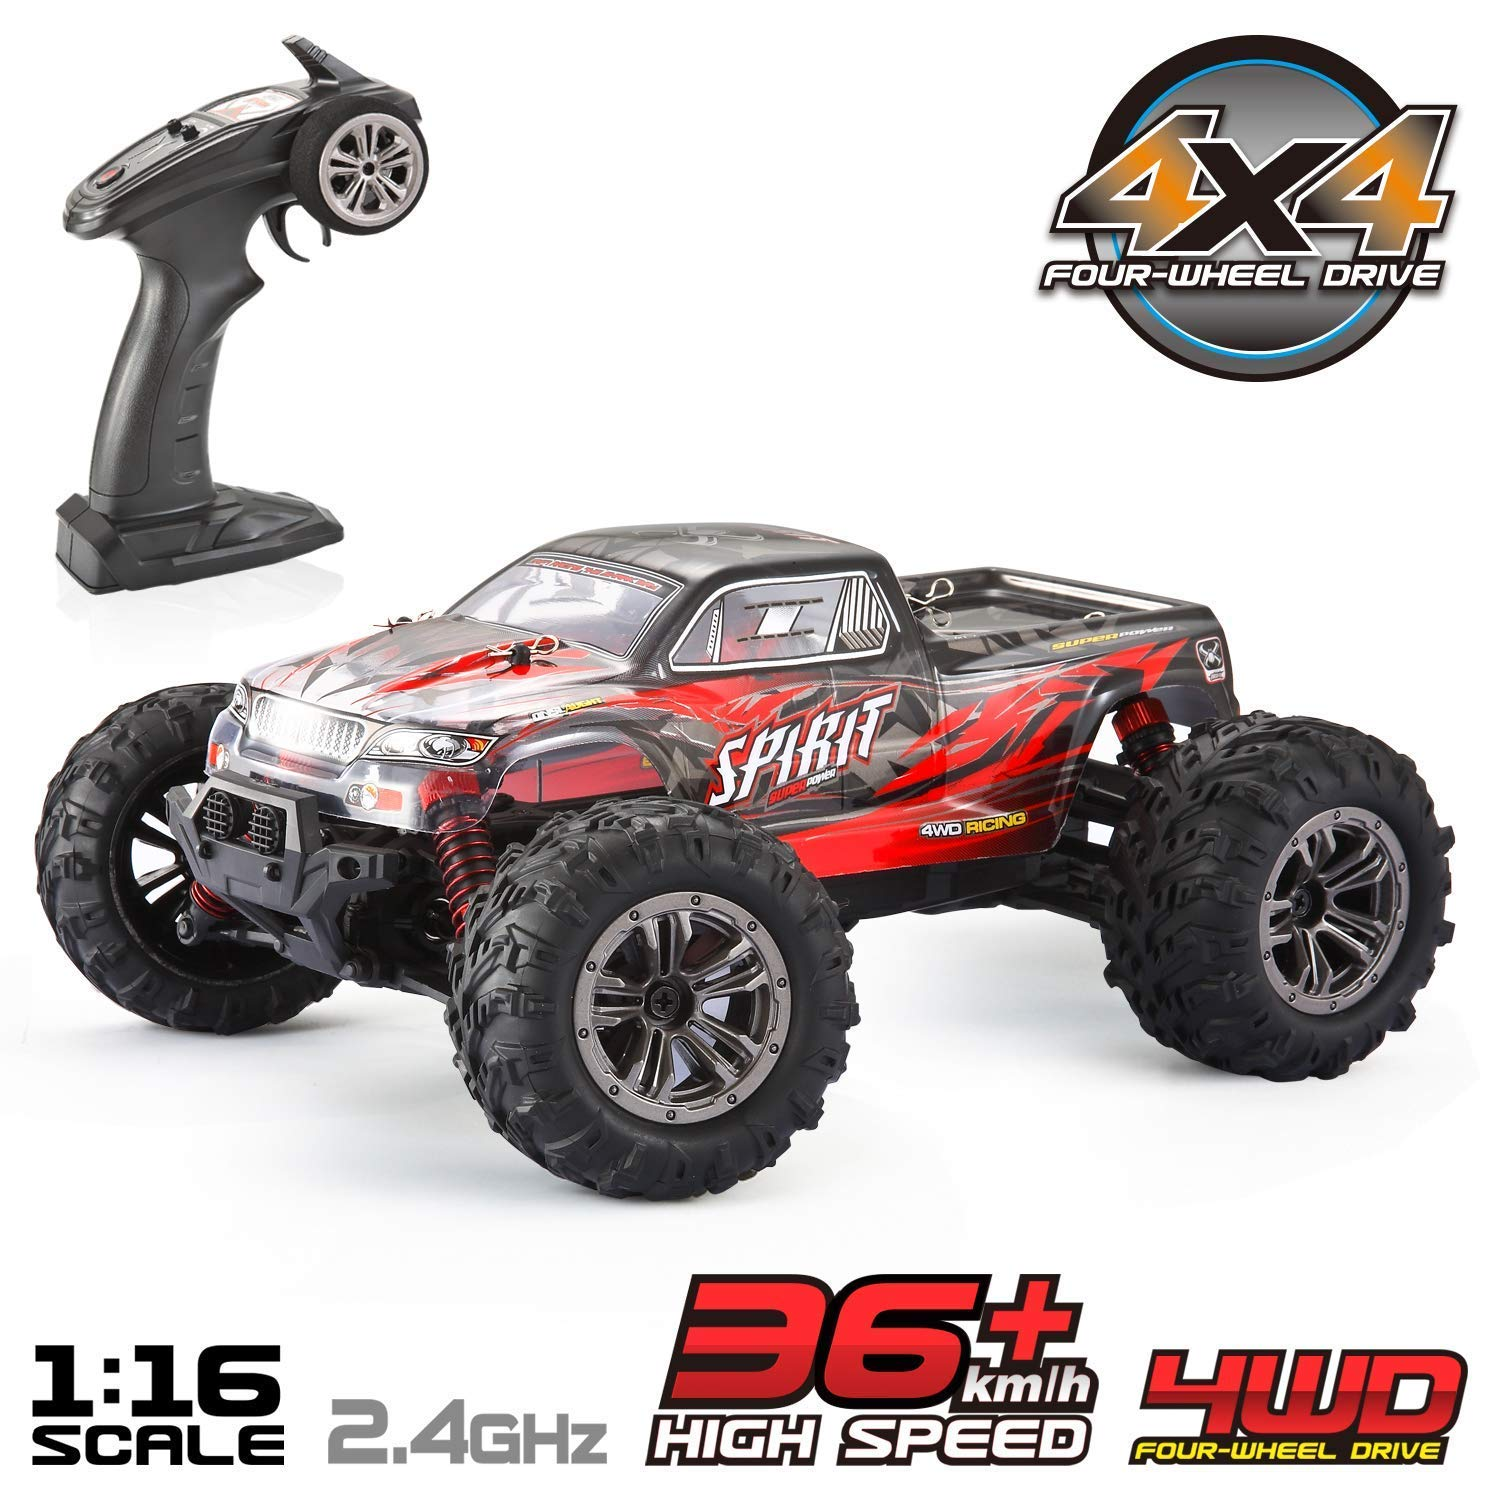 VATOS Remote Control Car High Speed Off-Road Vehicle 1:16 Scale 36km/h 4WD  2 4GHz Electric Racing Car RC Buggy Vehicle Truck Buggy Crawler Toy Car for